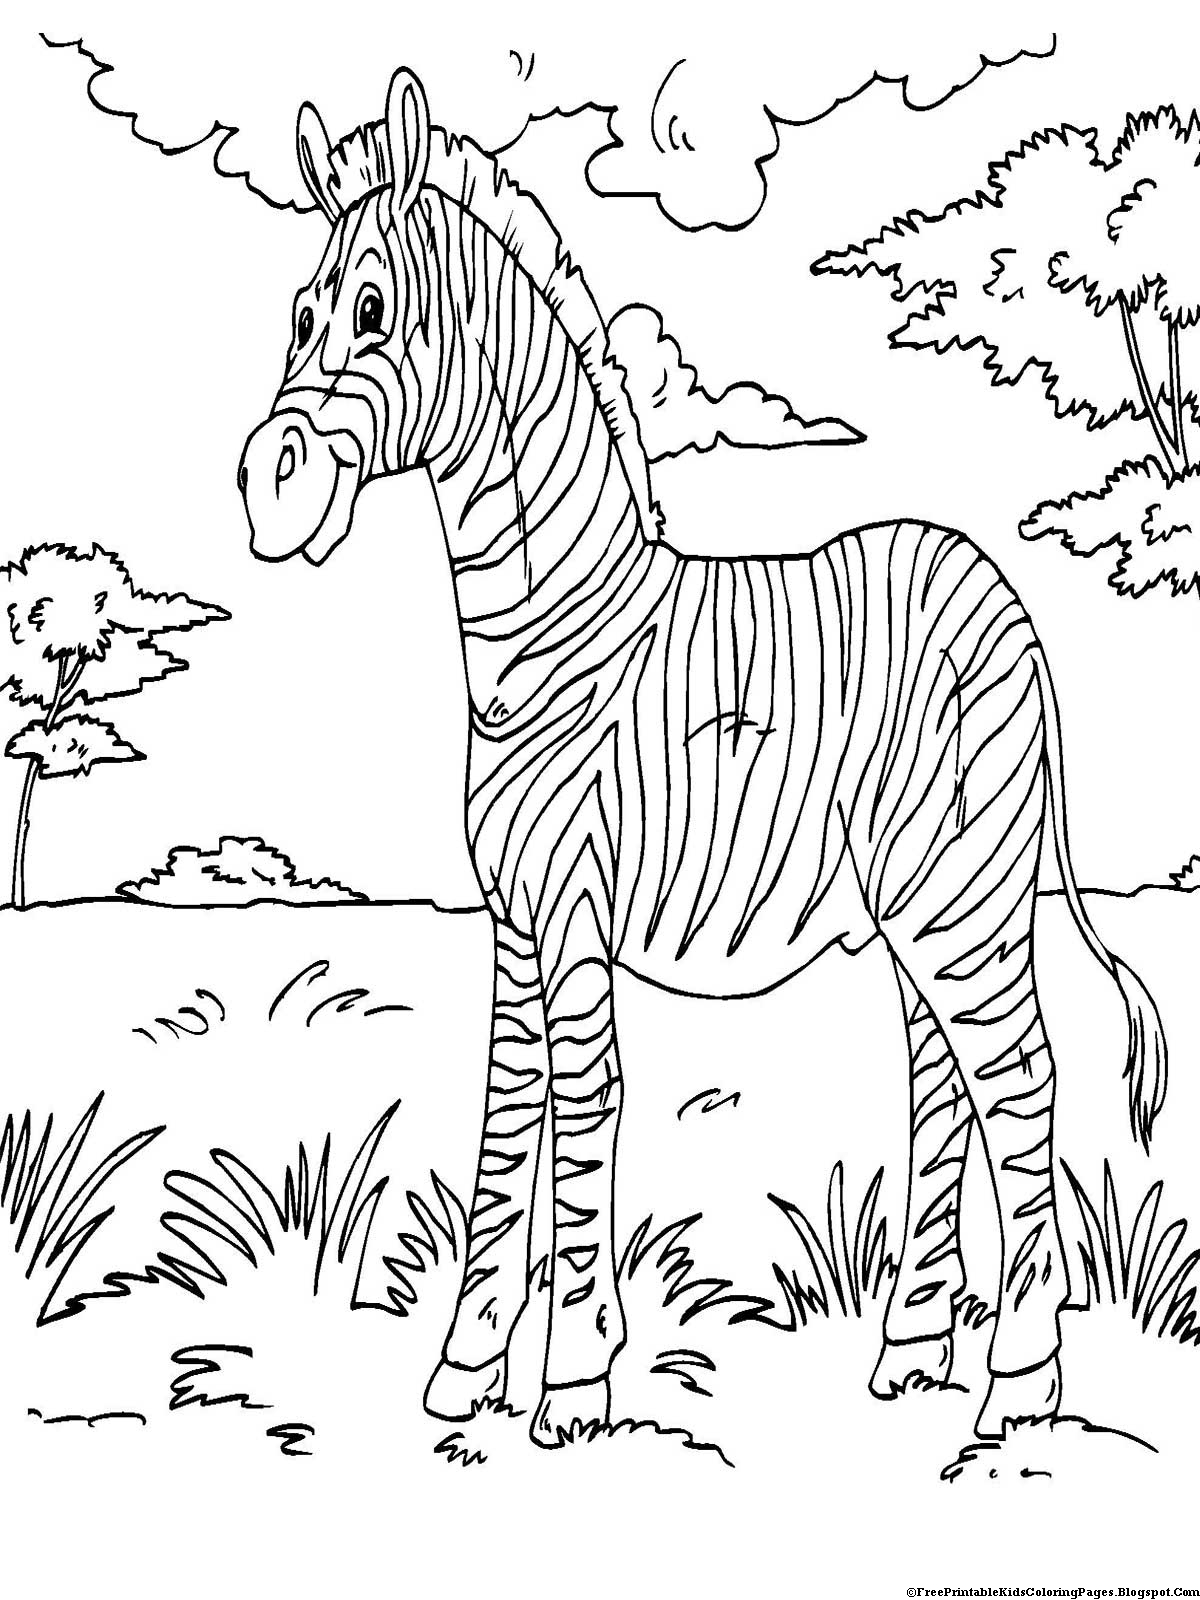 coloring animals animal coloring pages best coloring pages for kids animals coloring